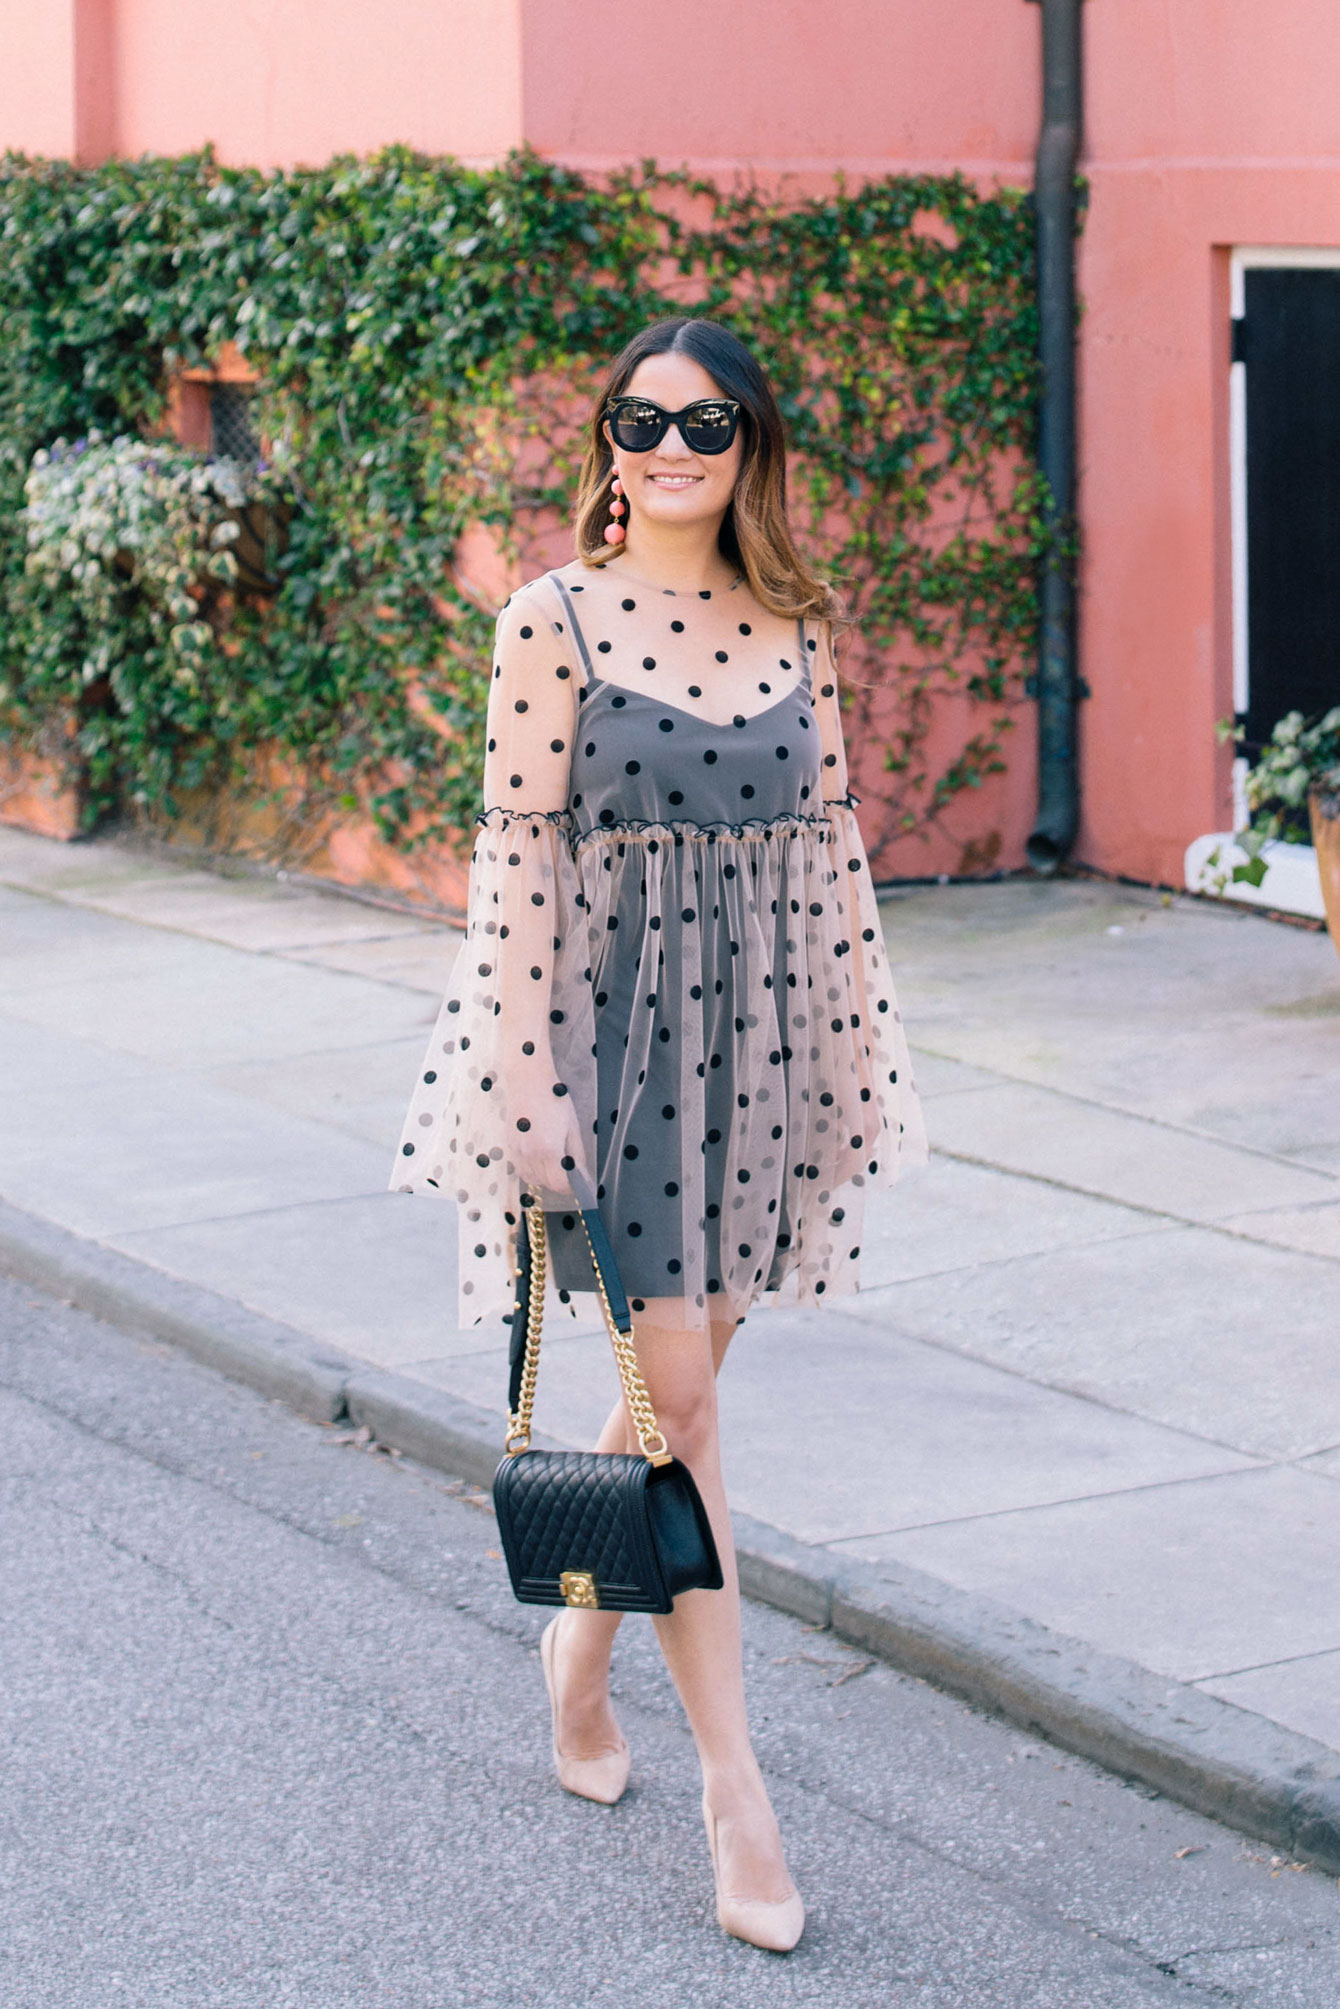 Black Polka Dot Sheer Dress